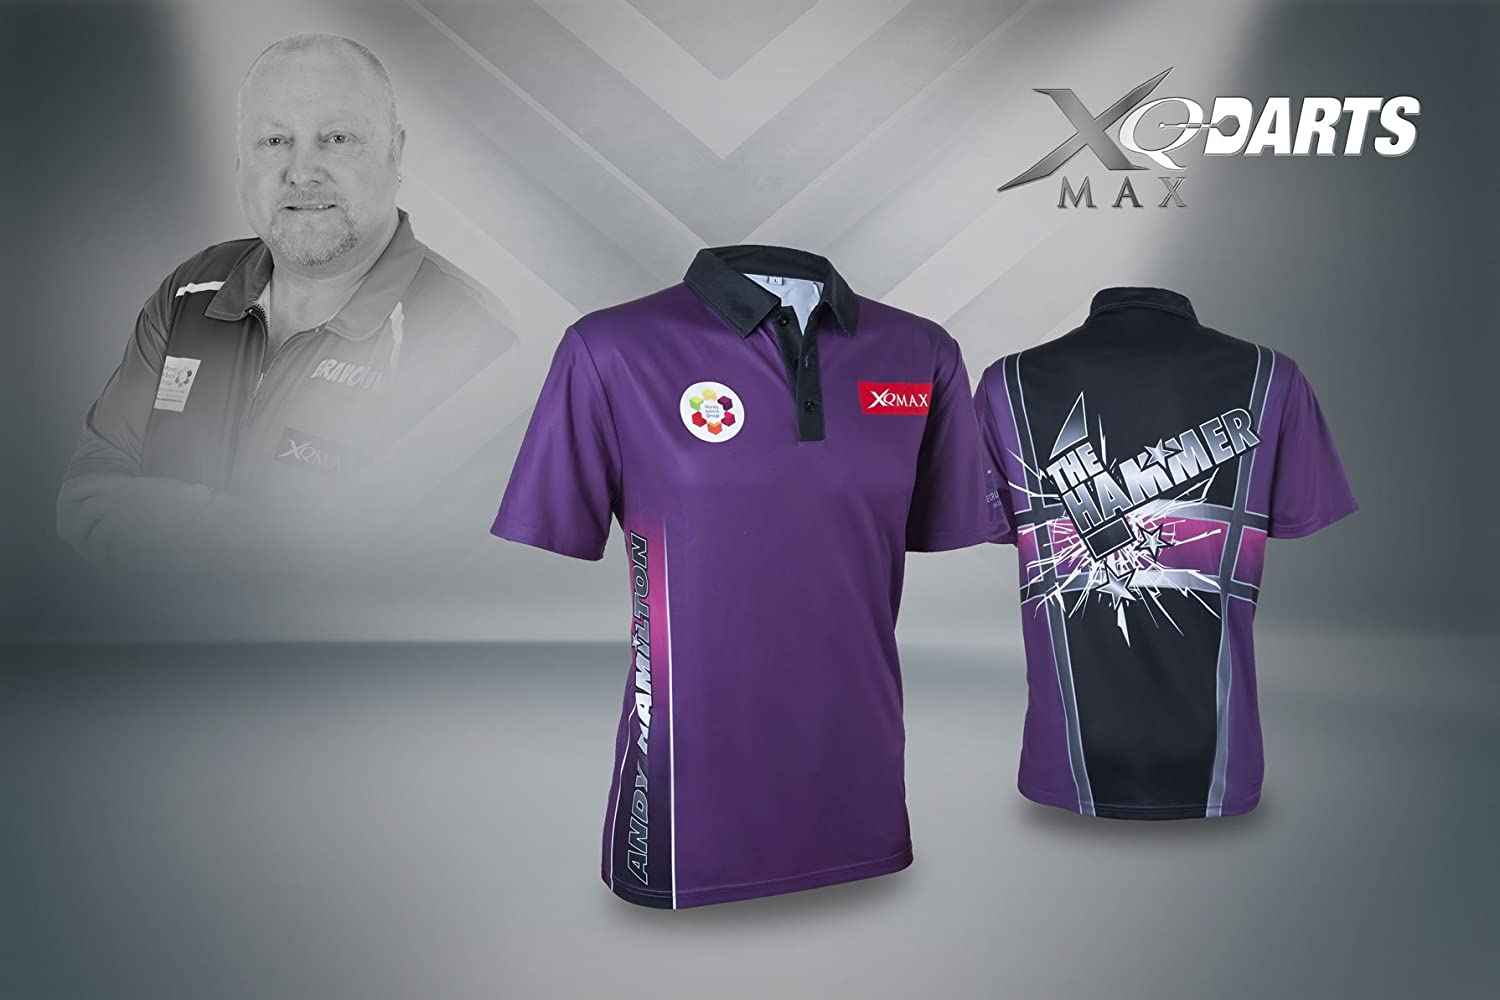 XQmax T-Shirt Andy Hamilton Replica Match Shirt Gr. 2-XL